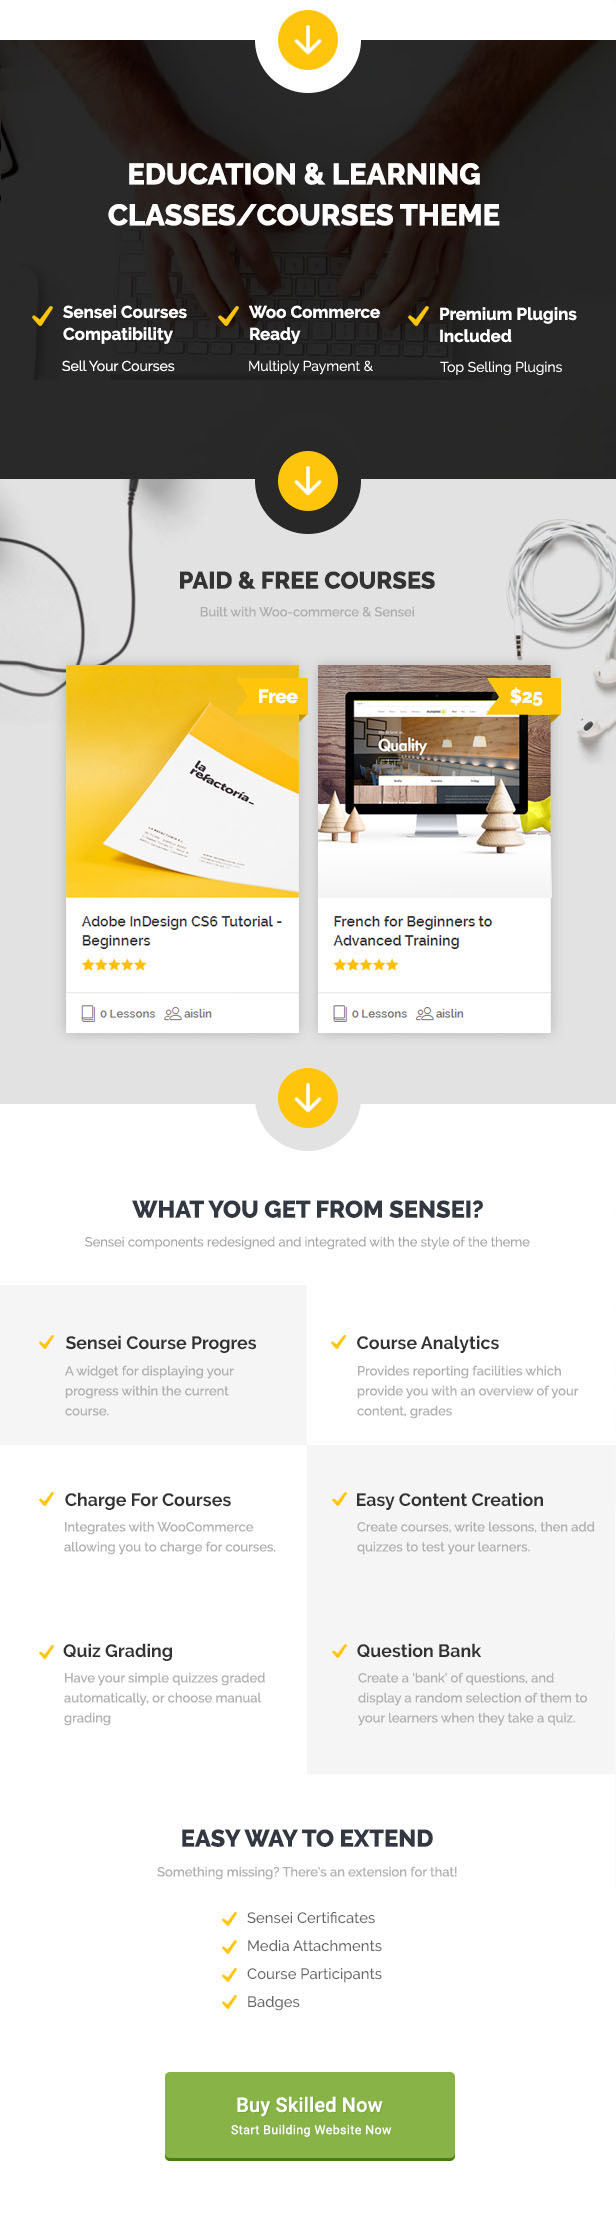 Skilled | School Education Courses WordPress Theme - 2